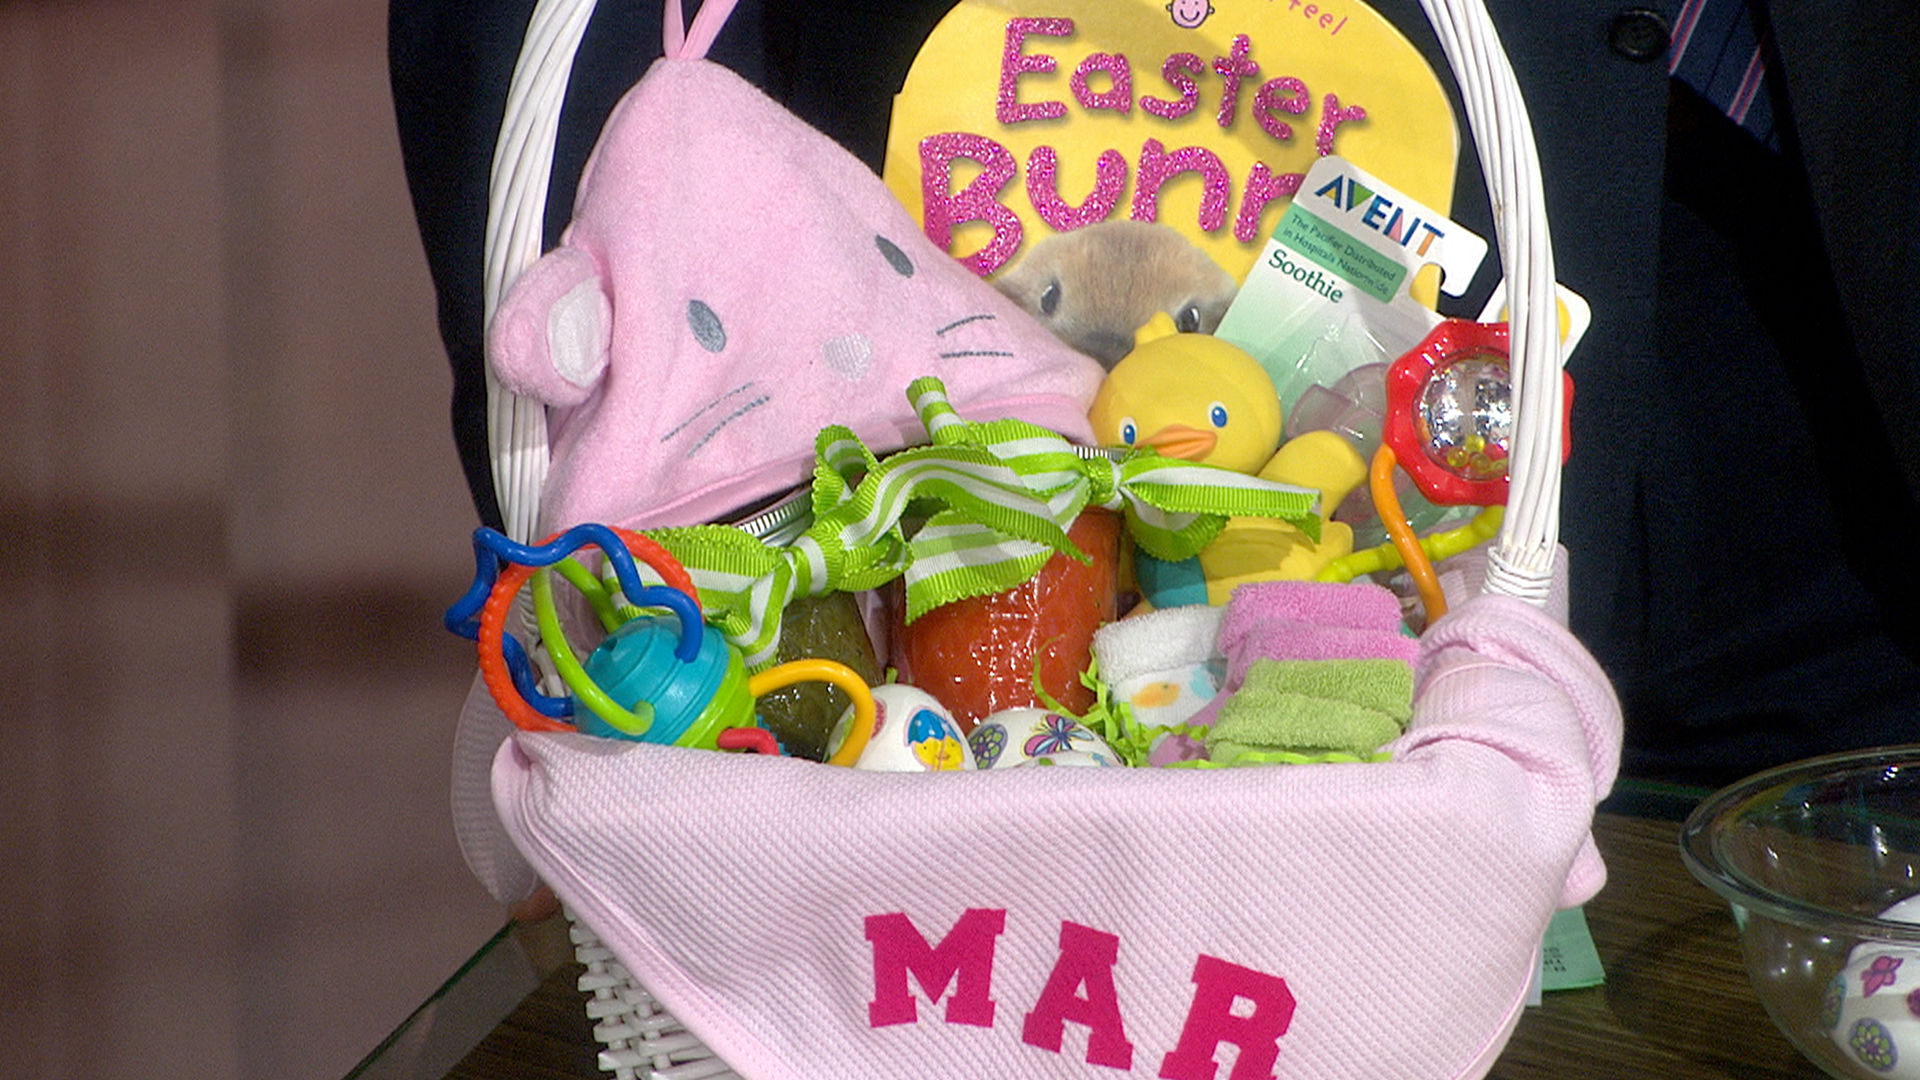 Egg cellent easter baskets for baby today negle Image collections